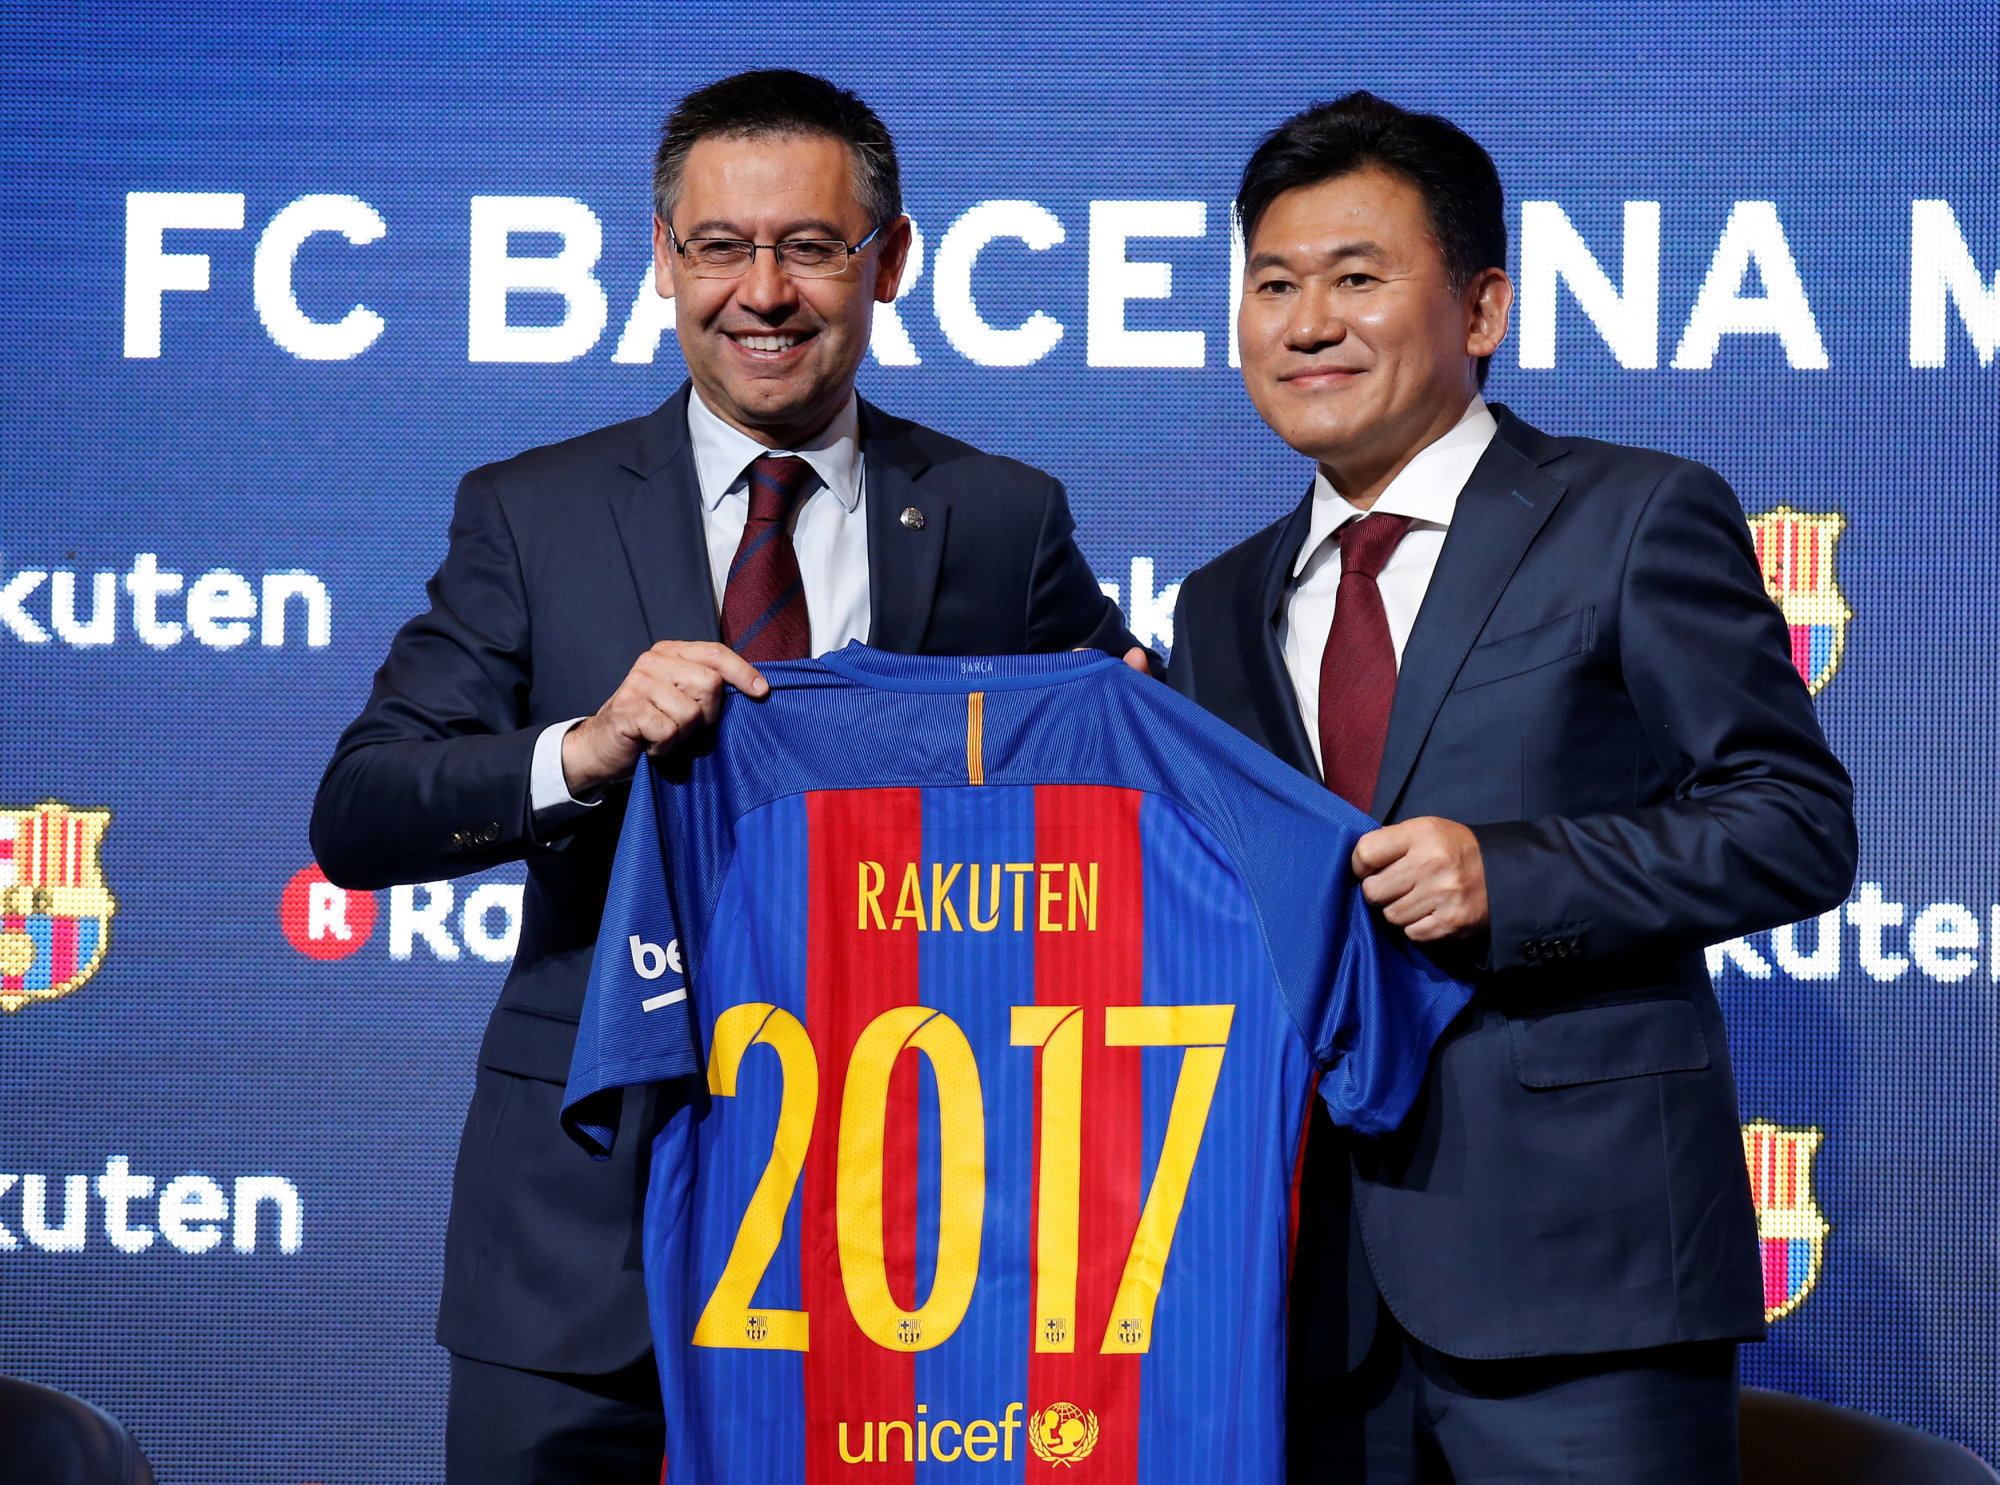 FC Barcelona's President Josep Maria Bartomeu (left) and Rakuten President and CEO Hiroshi Mikitani pose with a jersey after signing a contract as main sponsor in Barcelona Wednesday. | REUTERS